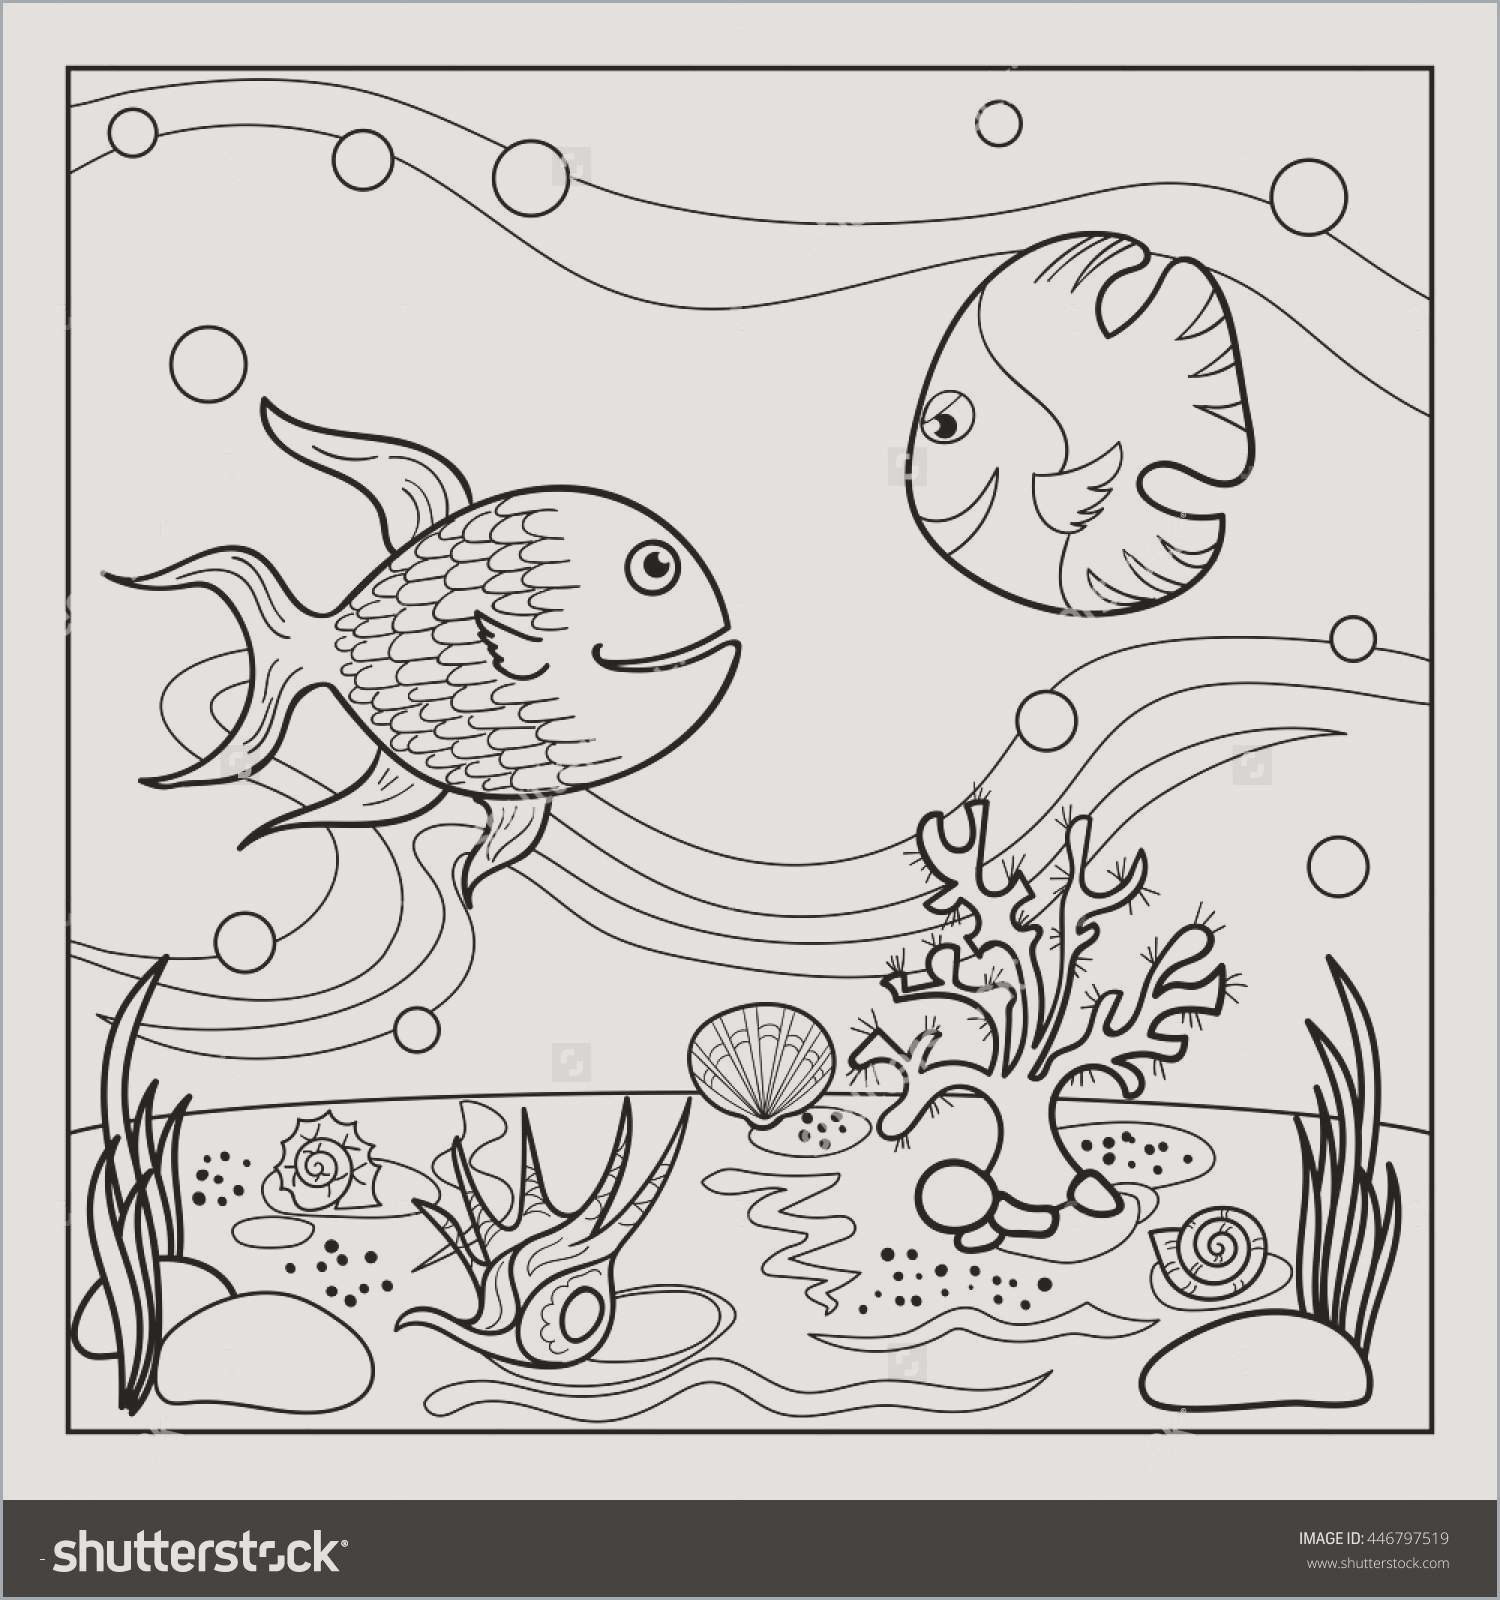 Ausmalbilder Zoo Frisch Fresh Stable Animals Coloring Page Nocn Bild